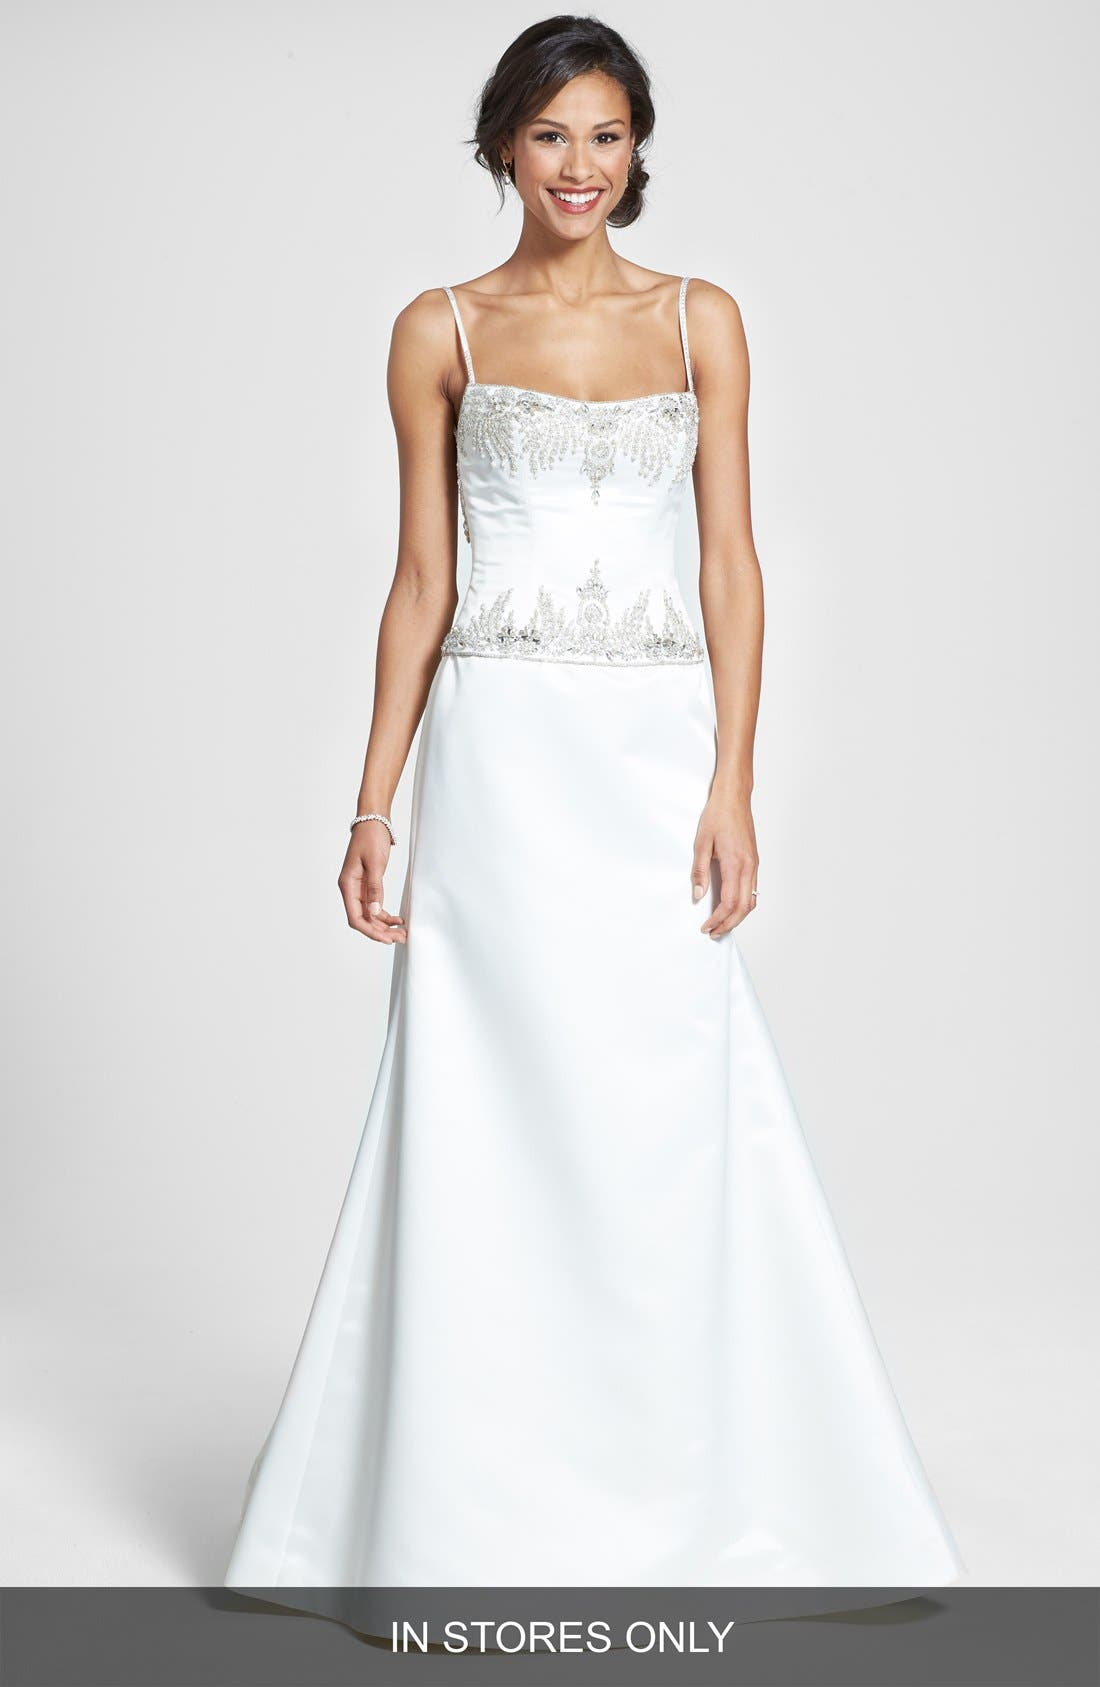 Alternate Image 1 Selected - Roses by Reem Acra 'Aster' Embellished Duchess Satin Dress (In Stores Only)